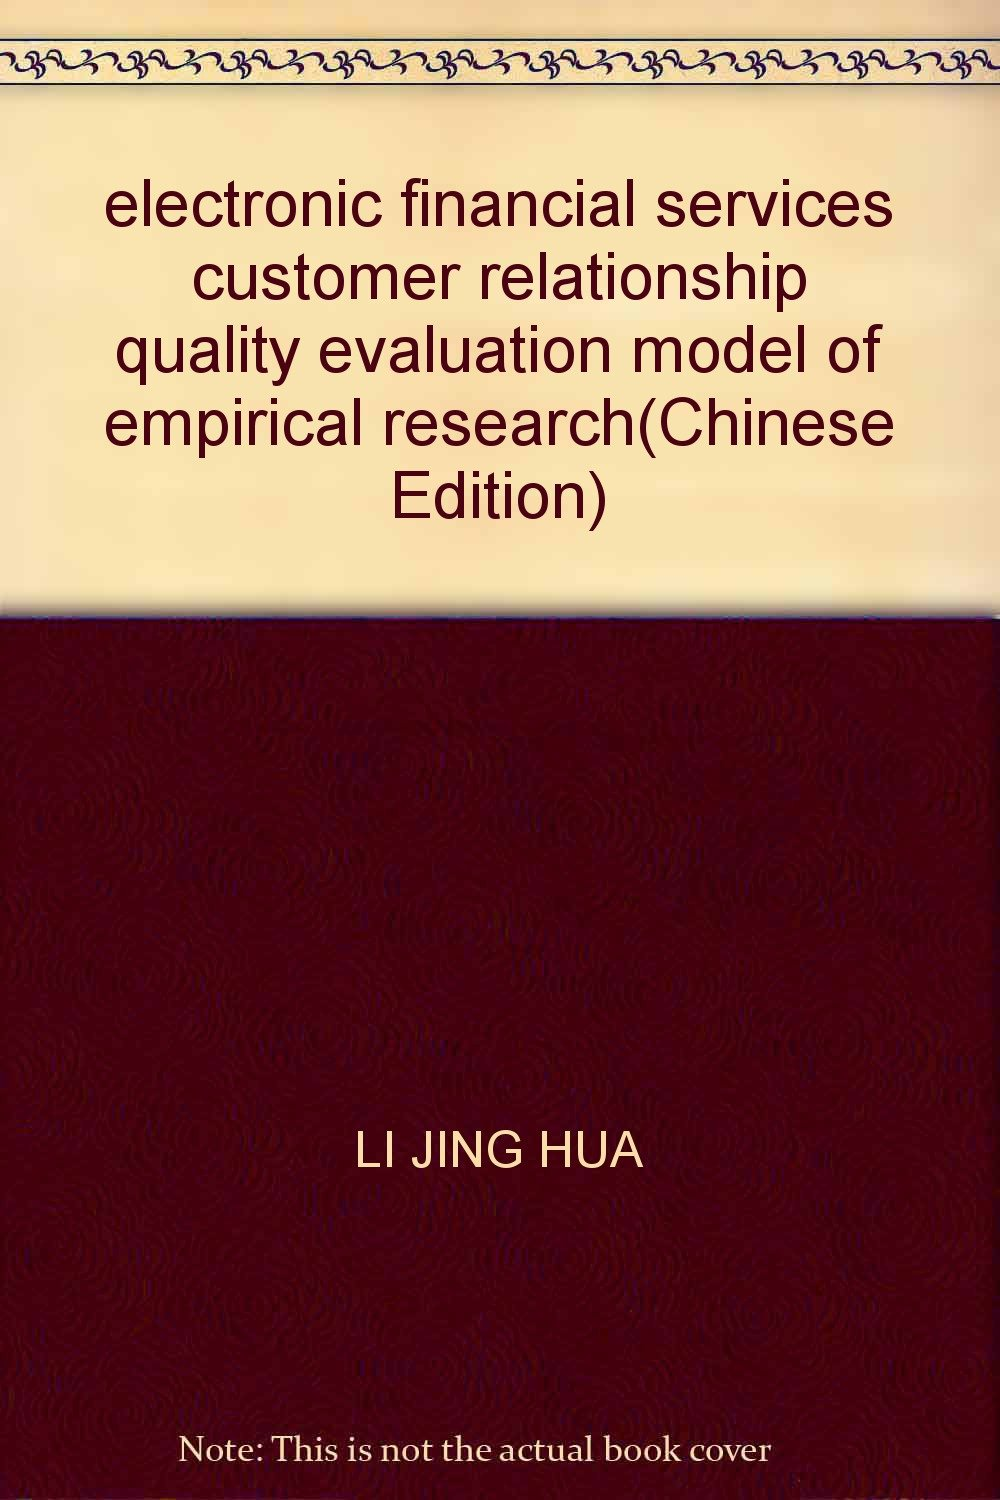 electronic financial services customer relationship quality evaluation model of empirical research(Chinese Edition) pdf